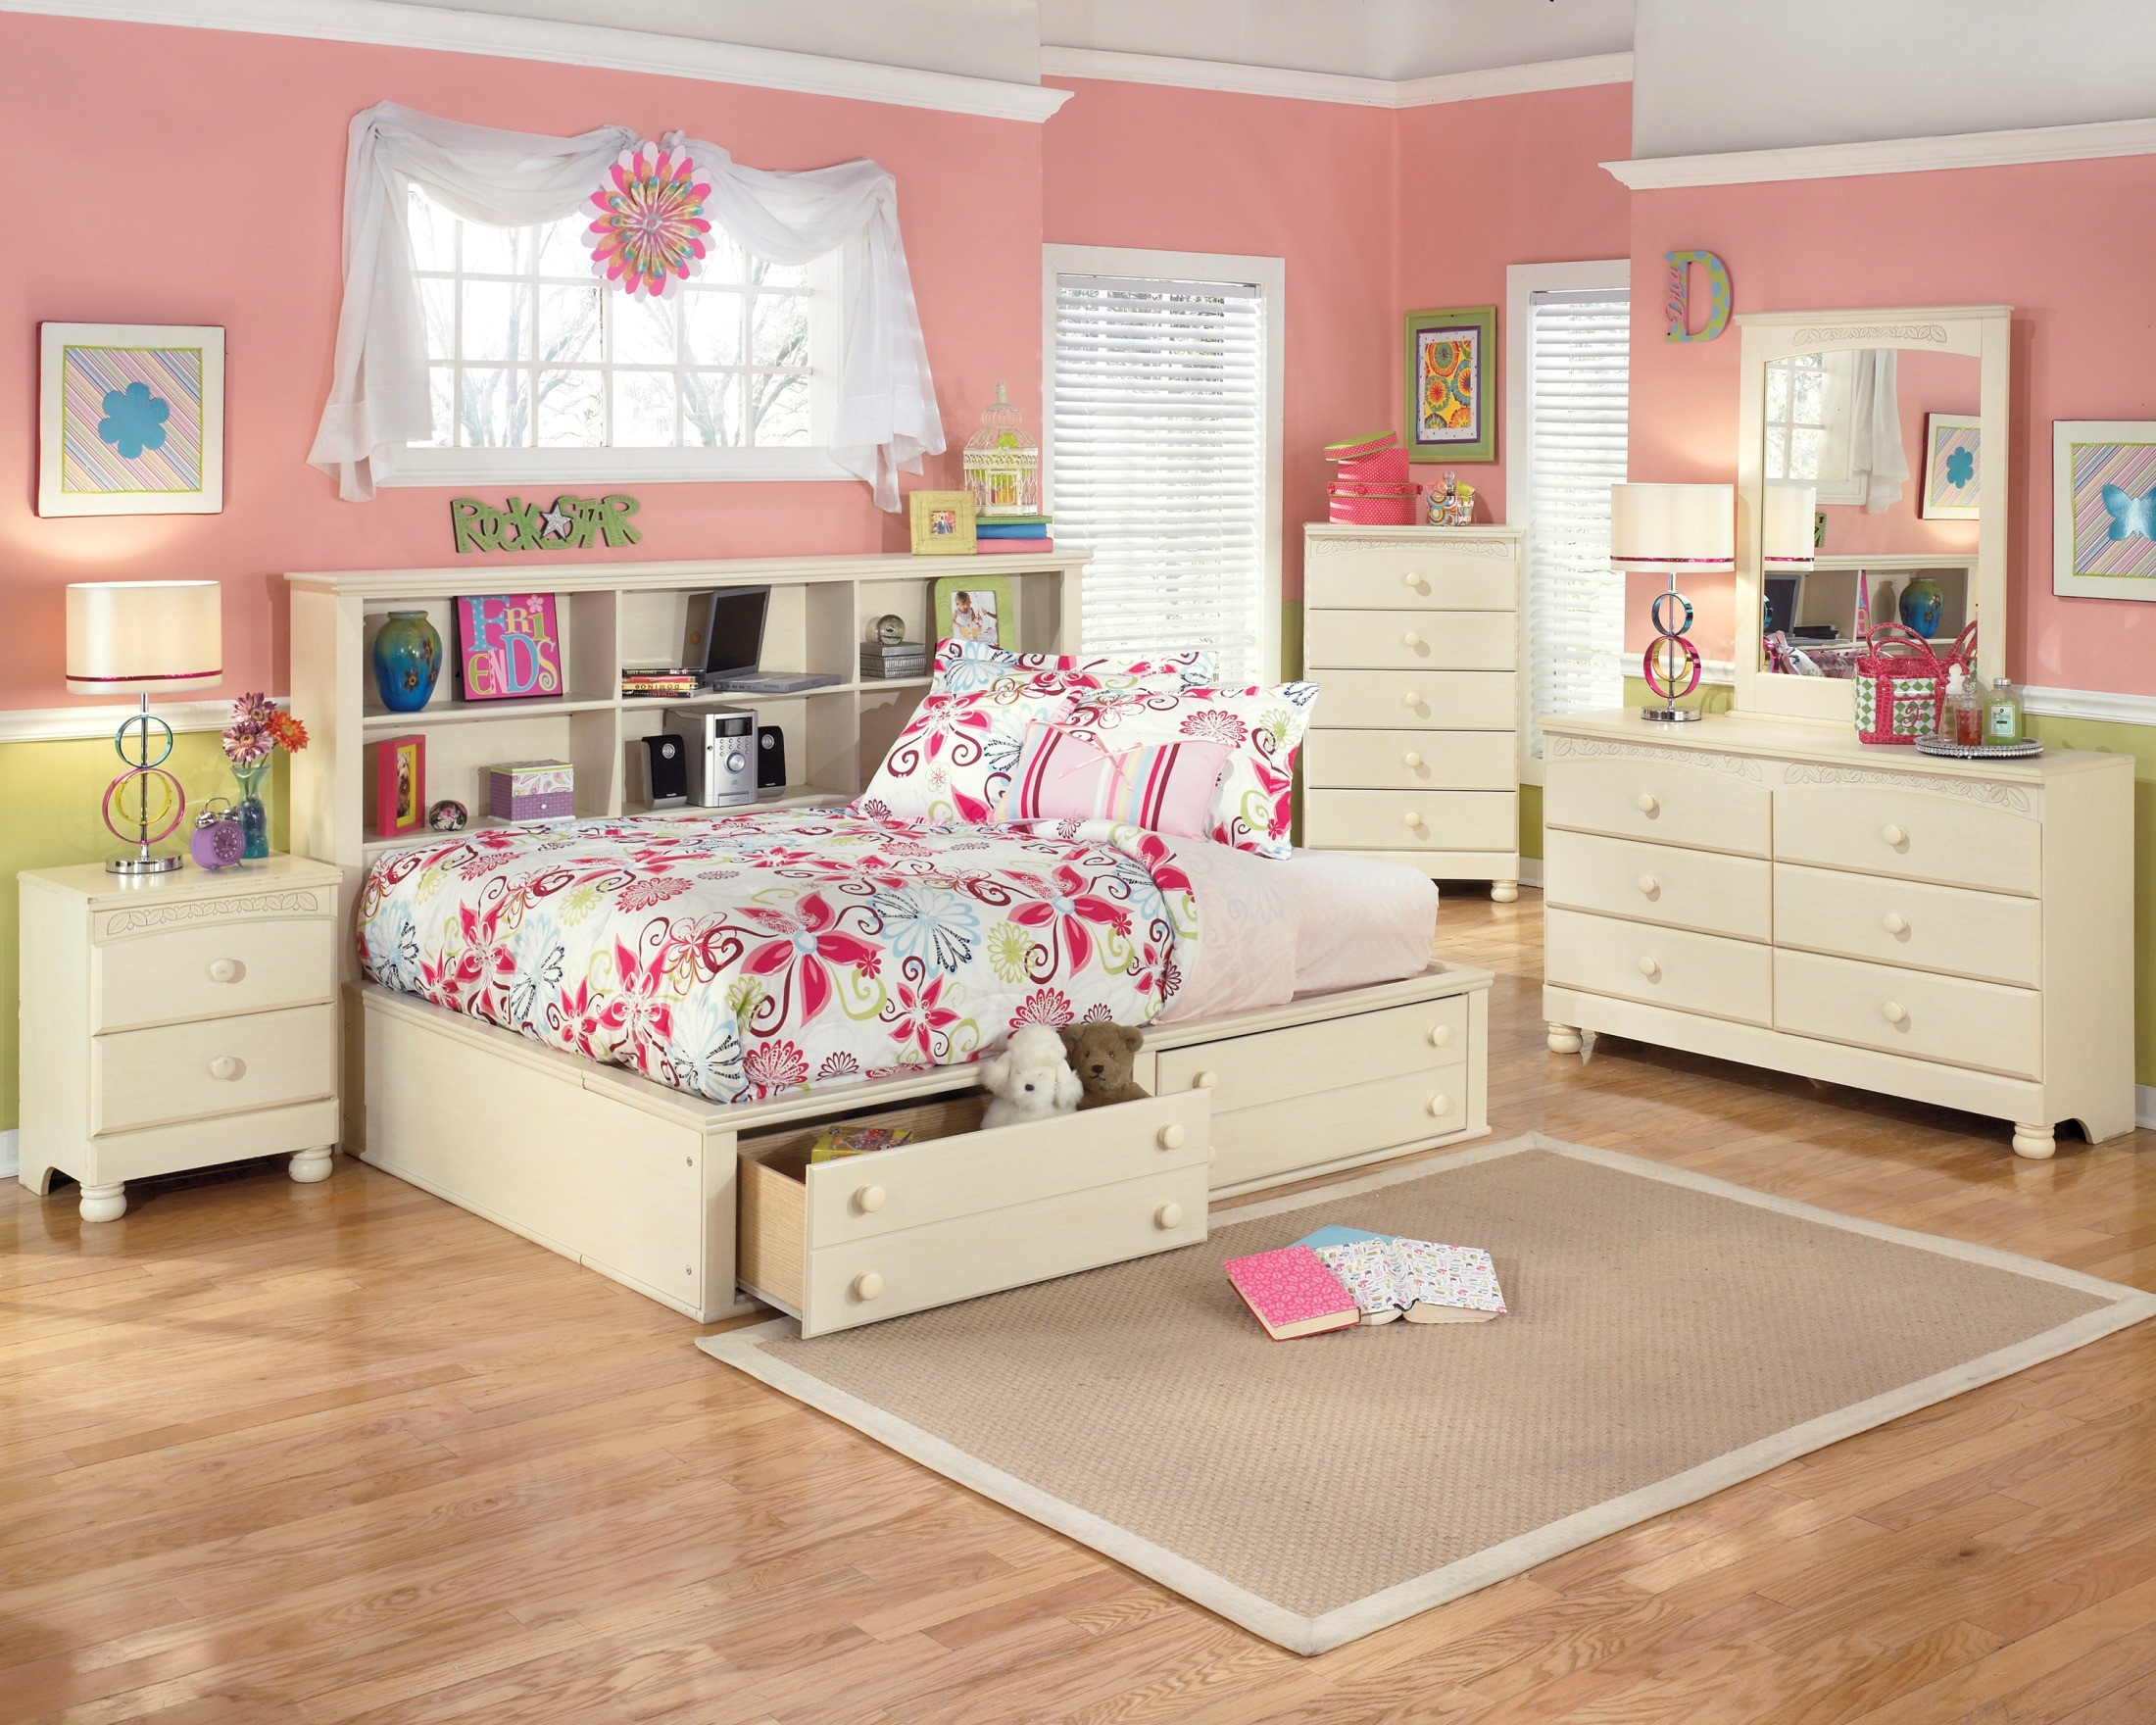 Cottage retreat youth bedside storage bedroom set from for Cottage retreat ii